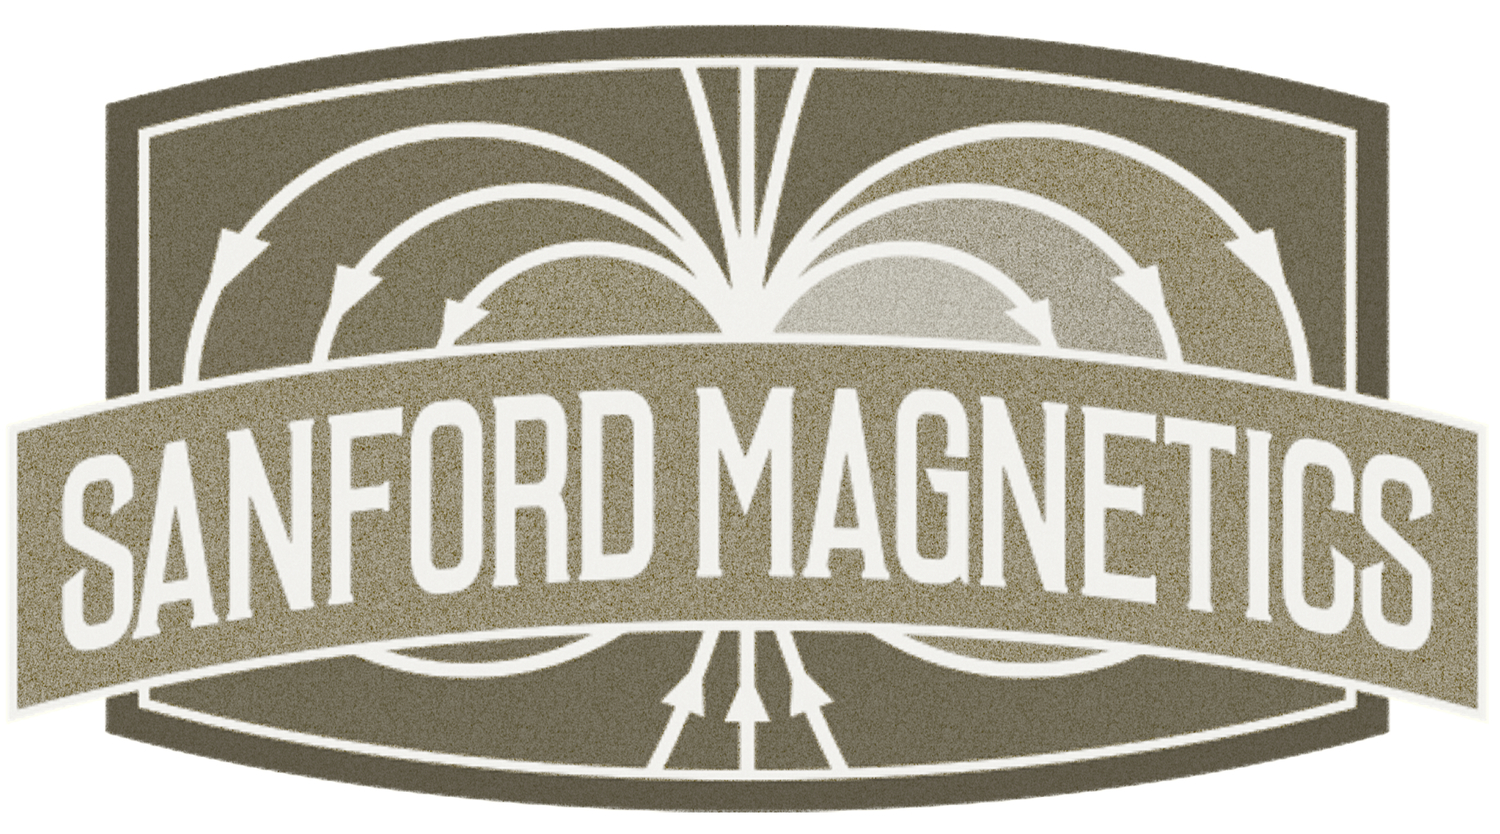 Sanford Magnetics